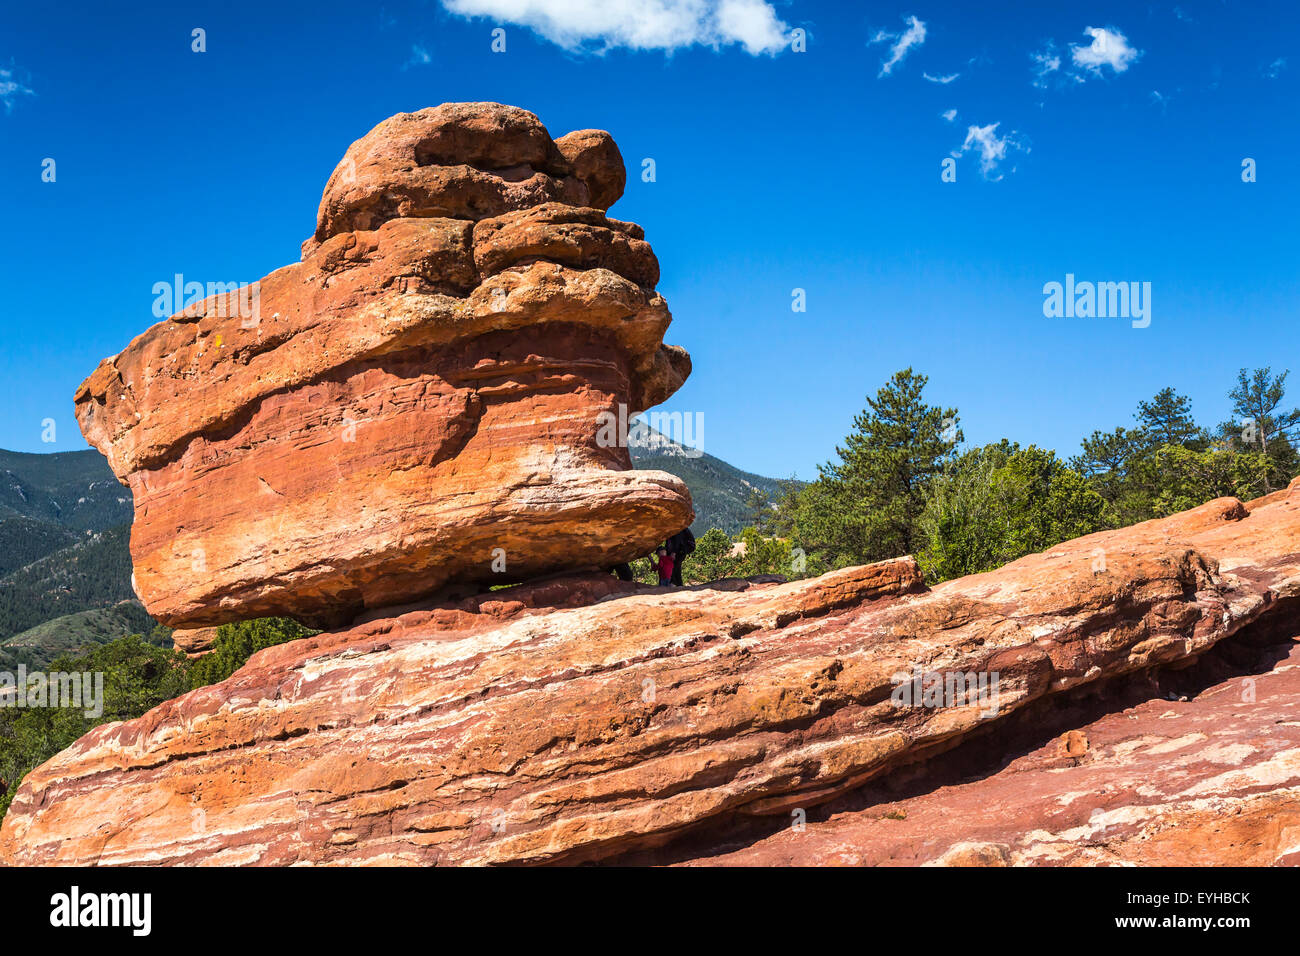 Balanced Rock In The Garden Of The Gods National Natural